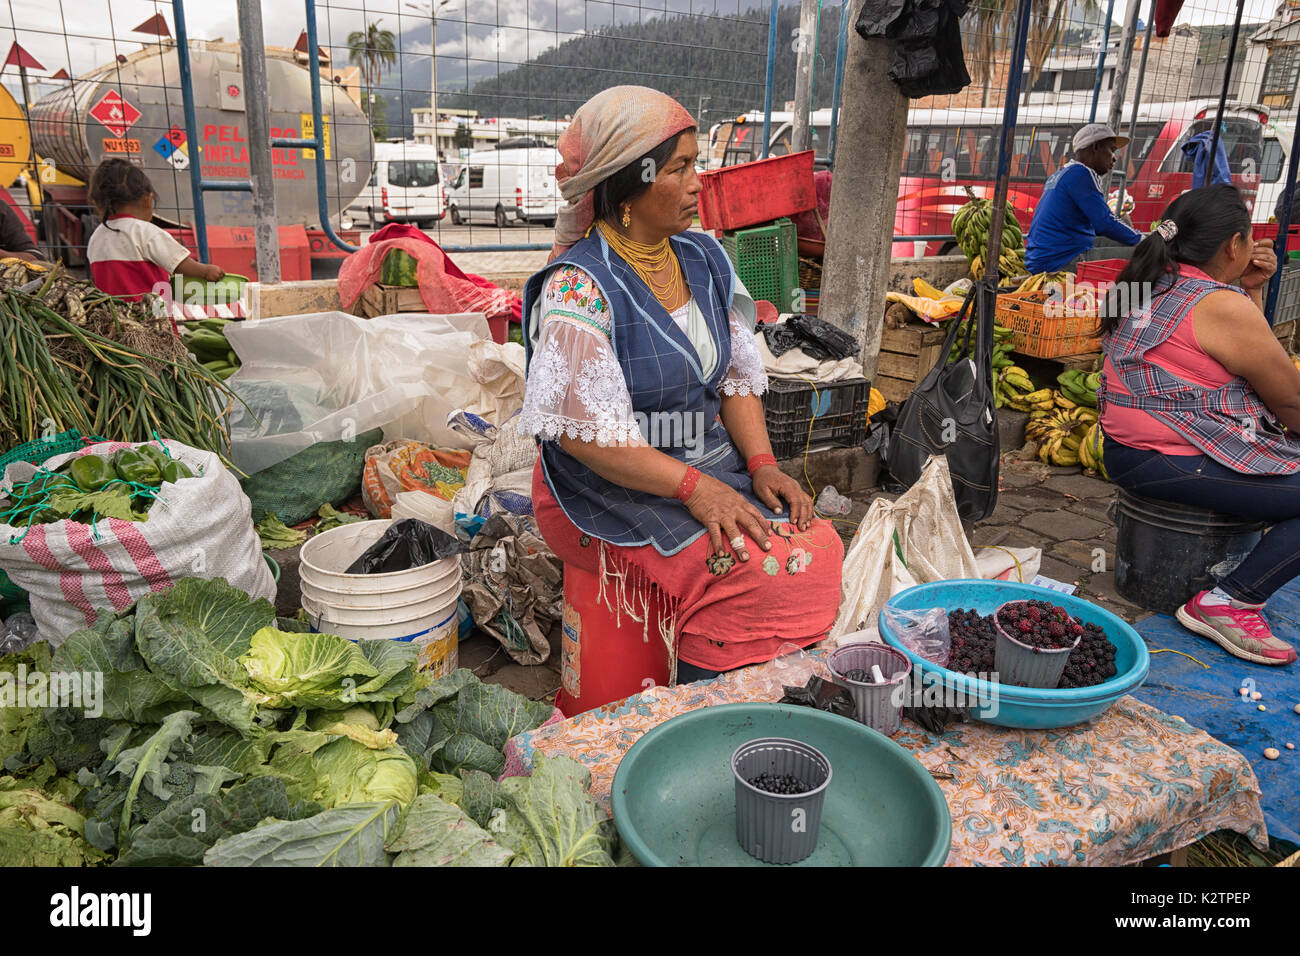 May 6, 2017 Otavalo, Ecuador: produce vendor in the Saturday market selling from street level - Stock Image